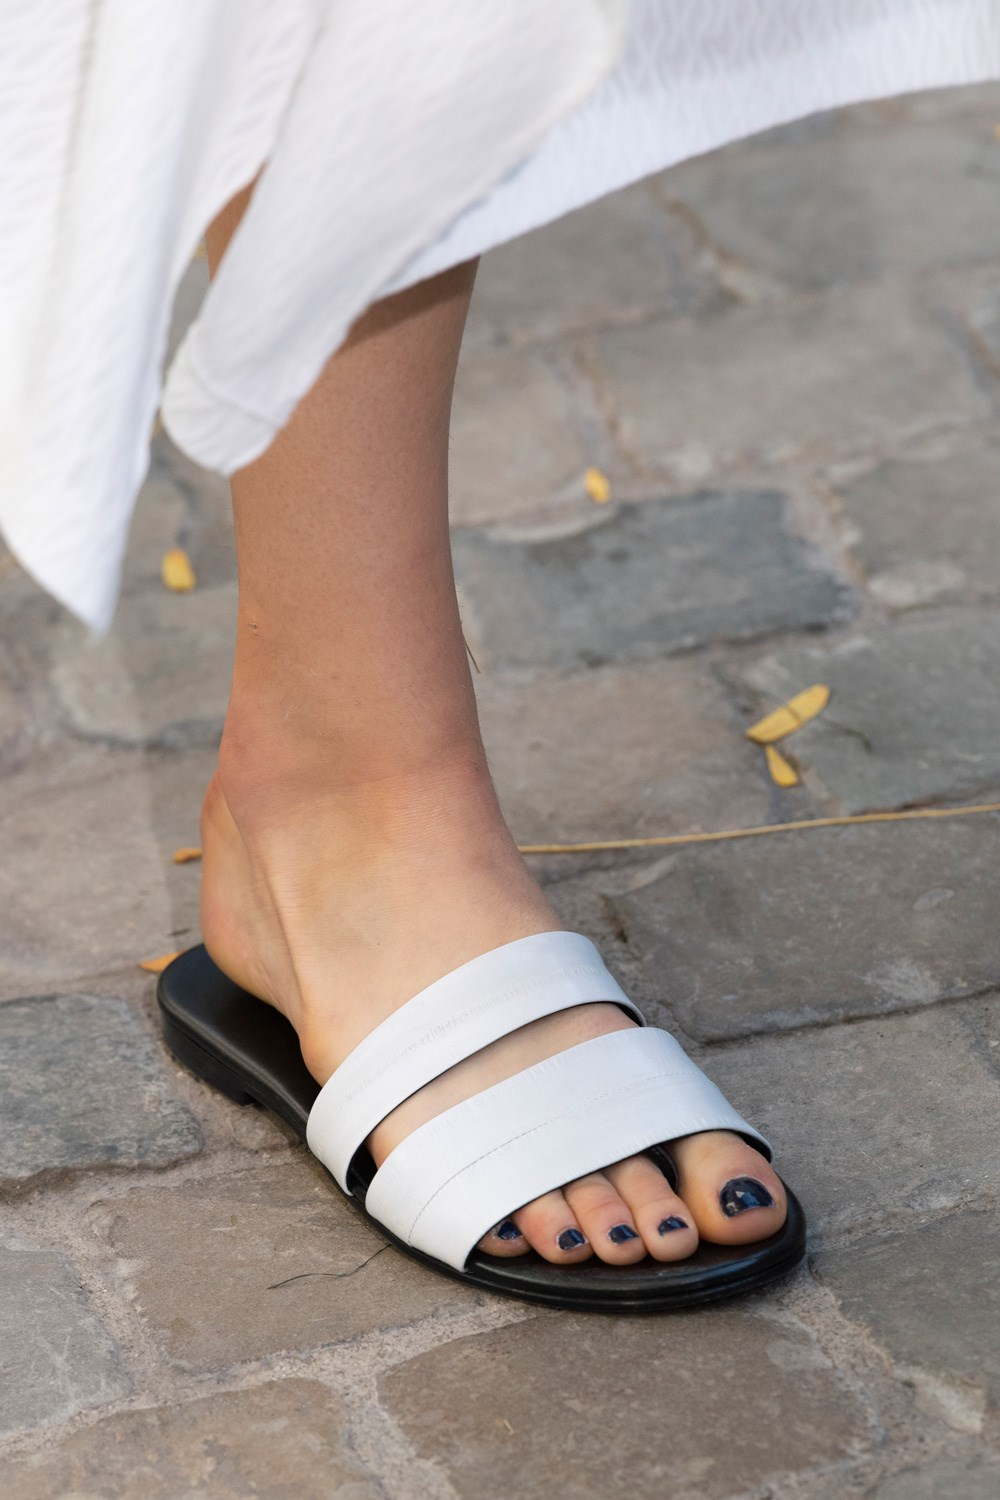 Roland Mouret Spring 2020 Fashion Show Details is part of Trending sandals, Trending shoes, Spring sandals, Fashion, Shoes spring summer, Runway shoes - Roland Mouret Spring 2020 Fashion Show Details  All the fashion runway closeup details, shows, and handbags from the Roland Mouret Spring 2020 Fashion Show Details